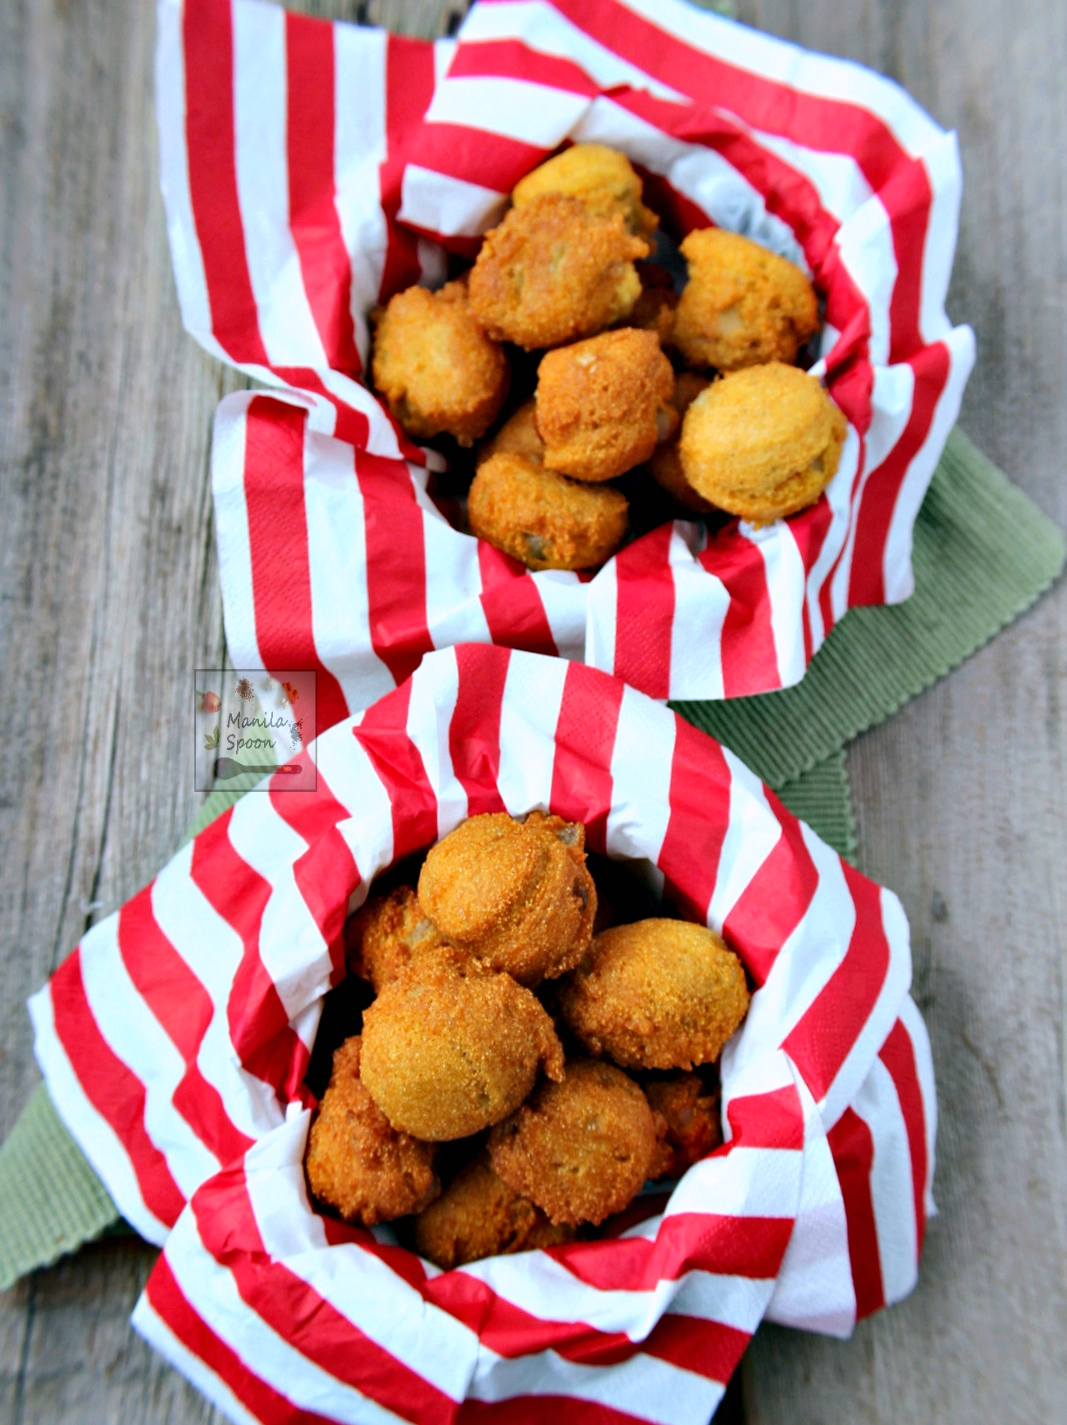 These delicious cornmeal fritters (hush puppies) flavored with garlic and onions are the perfect savory nibbles or side dish!